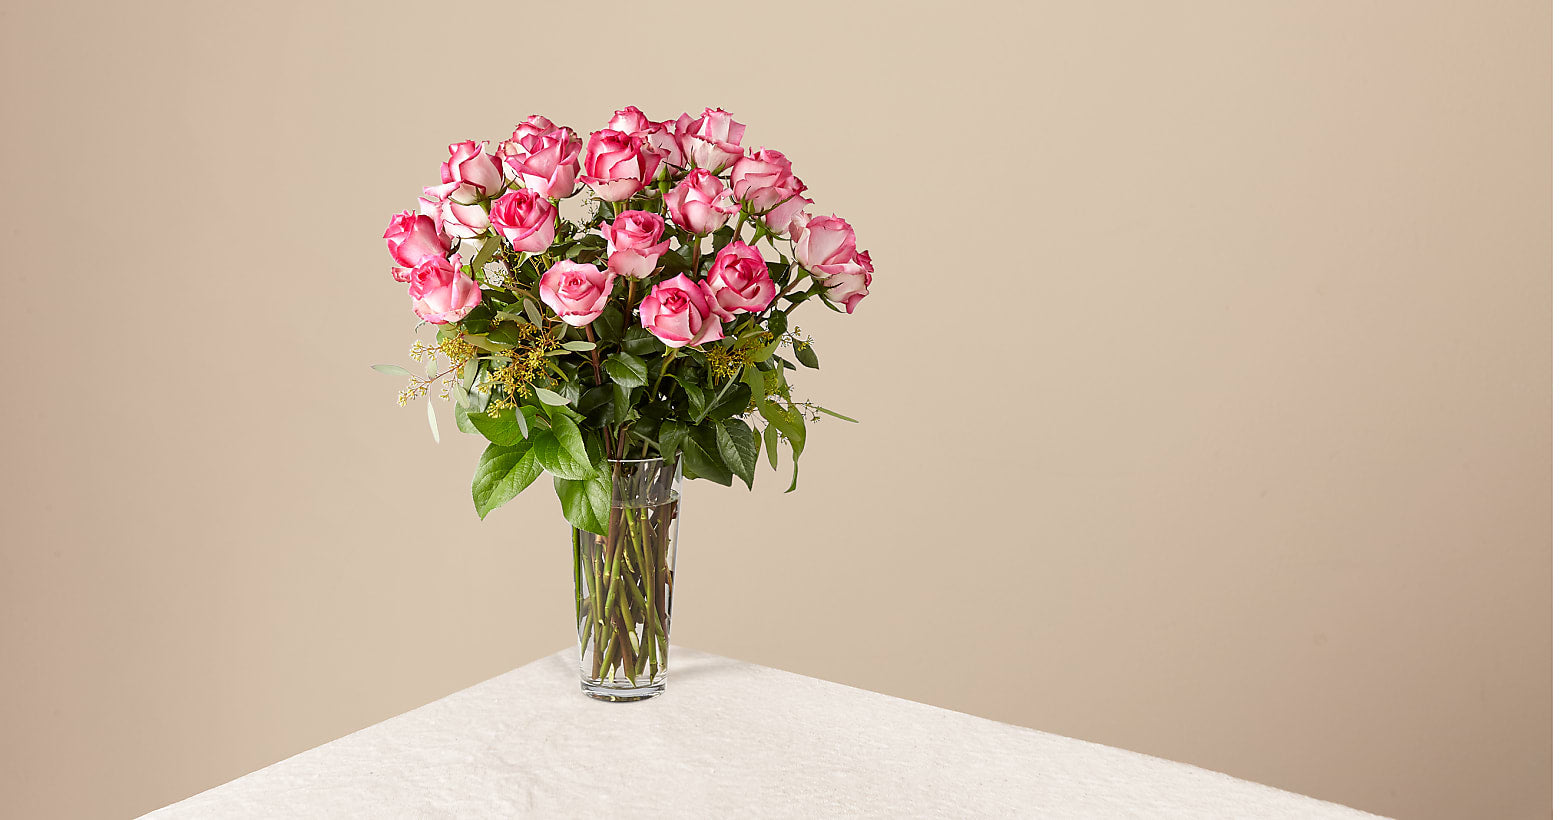 The Long Stem Pink Rose Bouquet - Image 1 Of 3